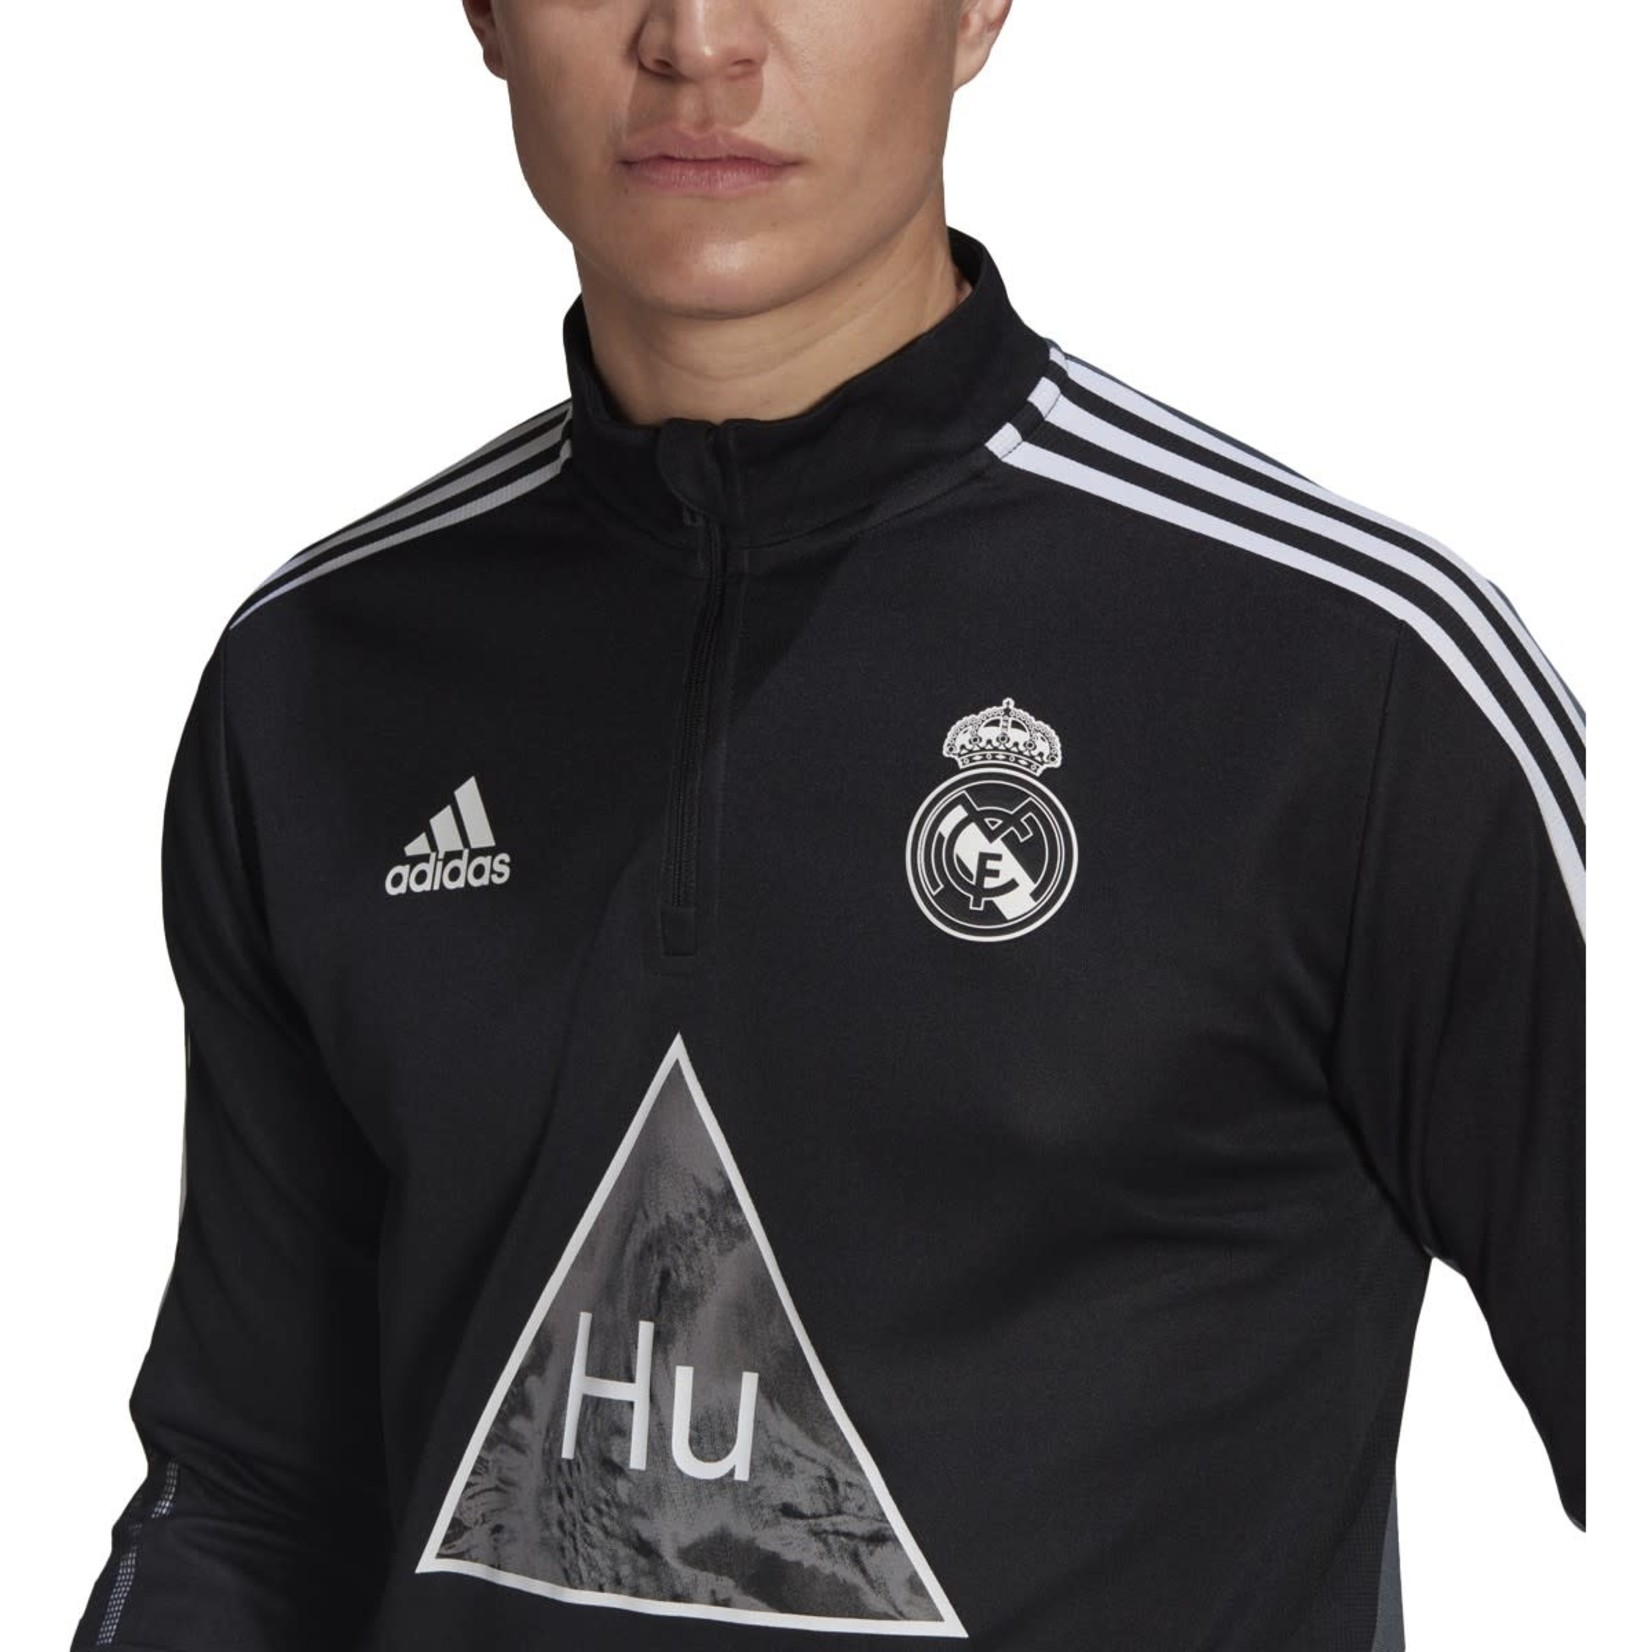 ADIDAS REAL MADRID HUMANRACE TRAINING TOP (BLACK/WHITE)